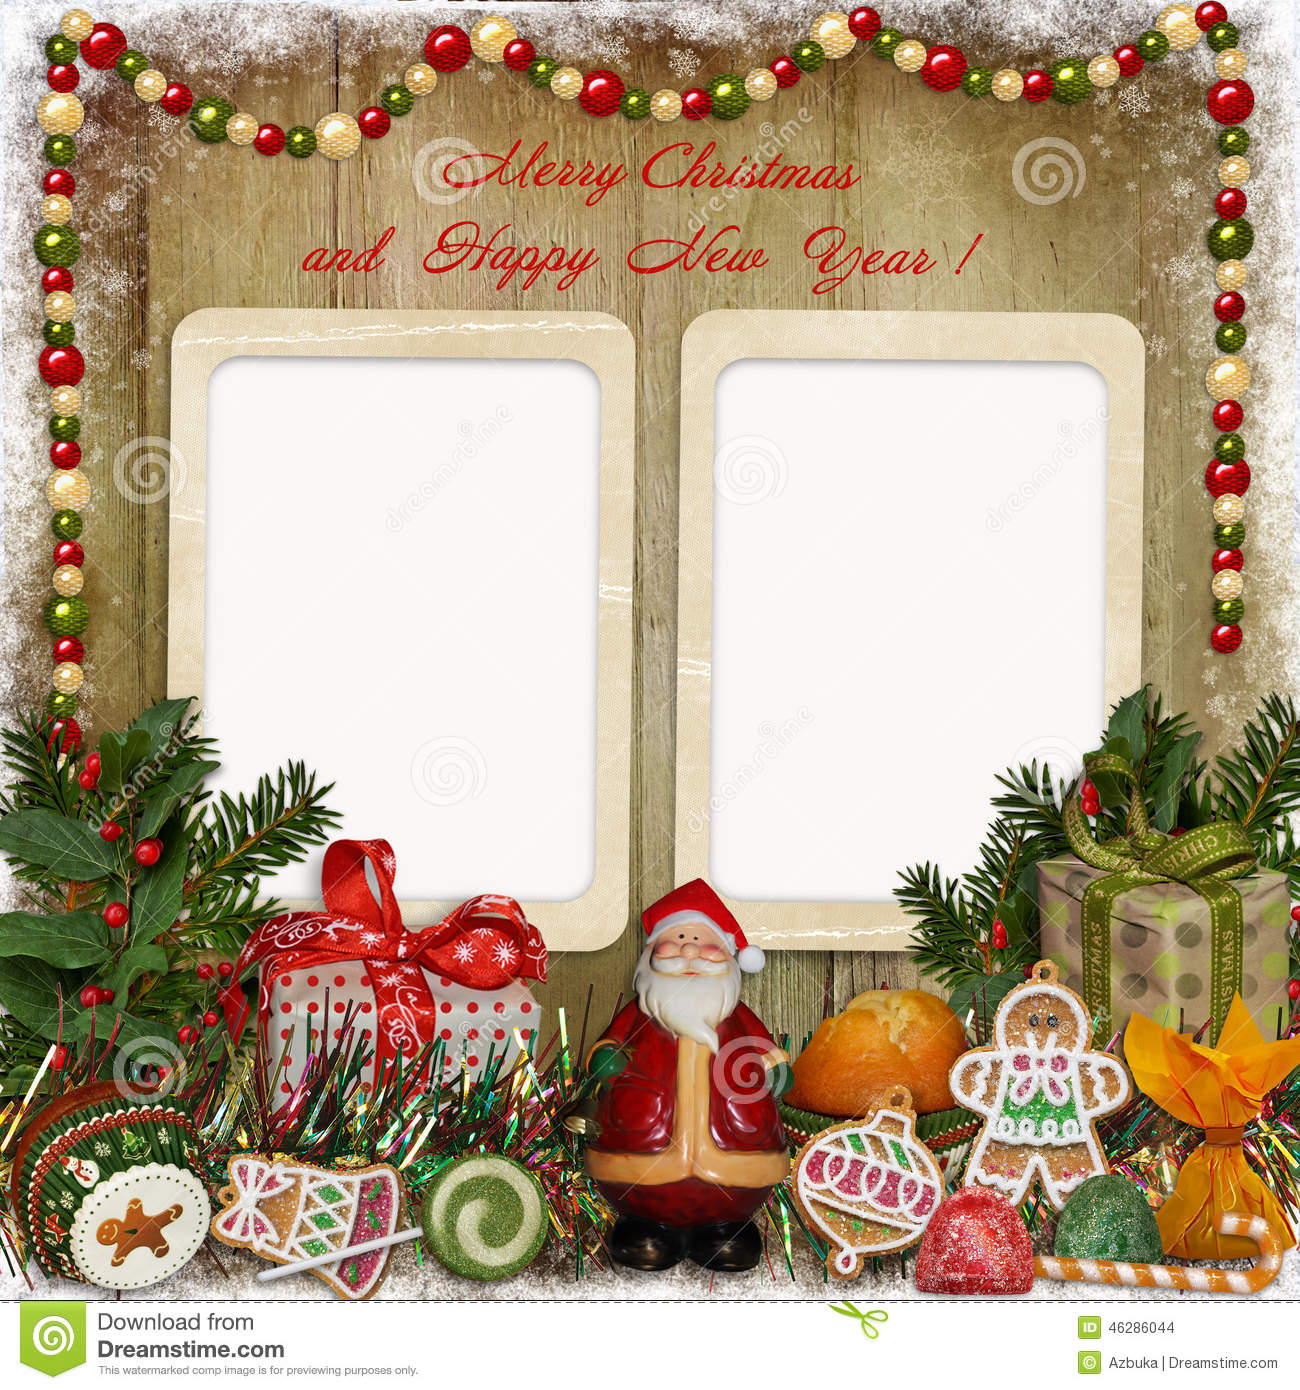 Christmas Greeting Card With Frame Santa Gifts And Candies Stock